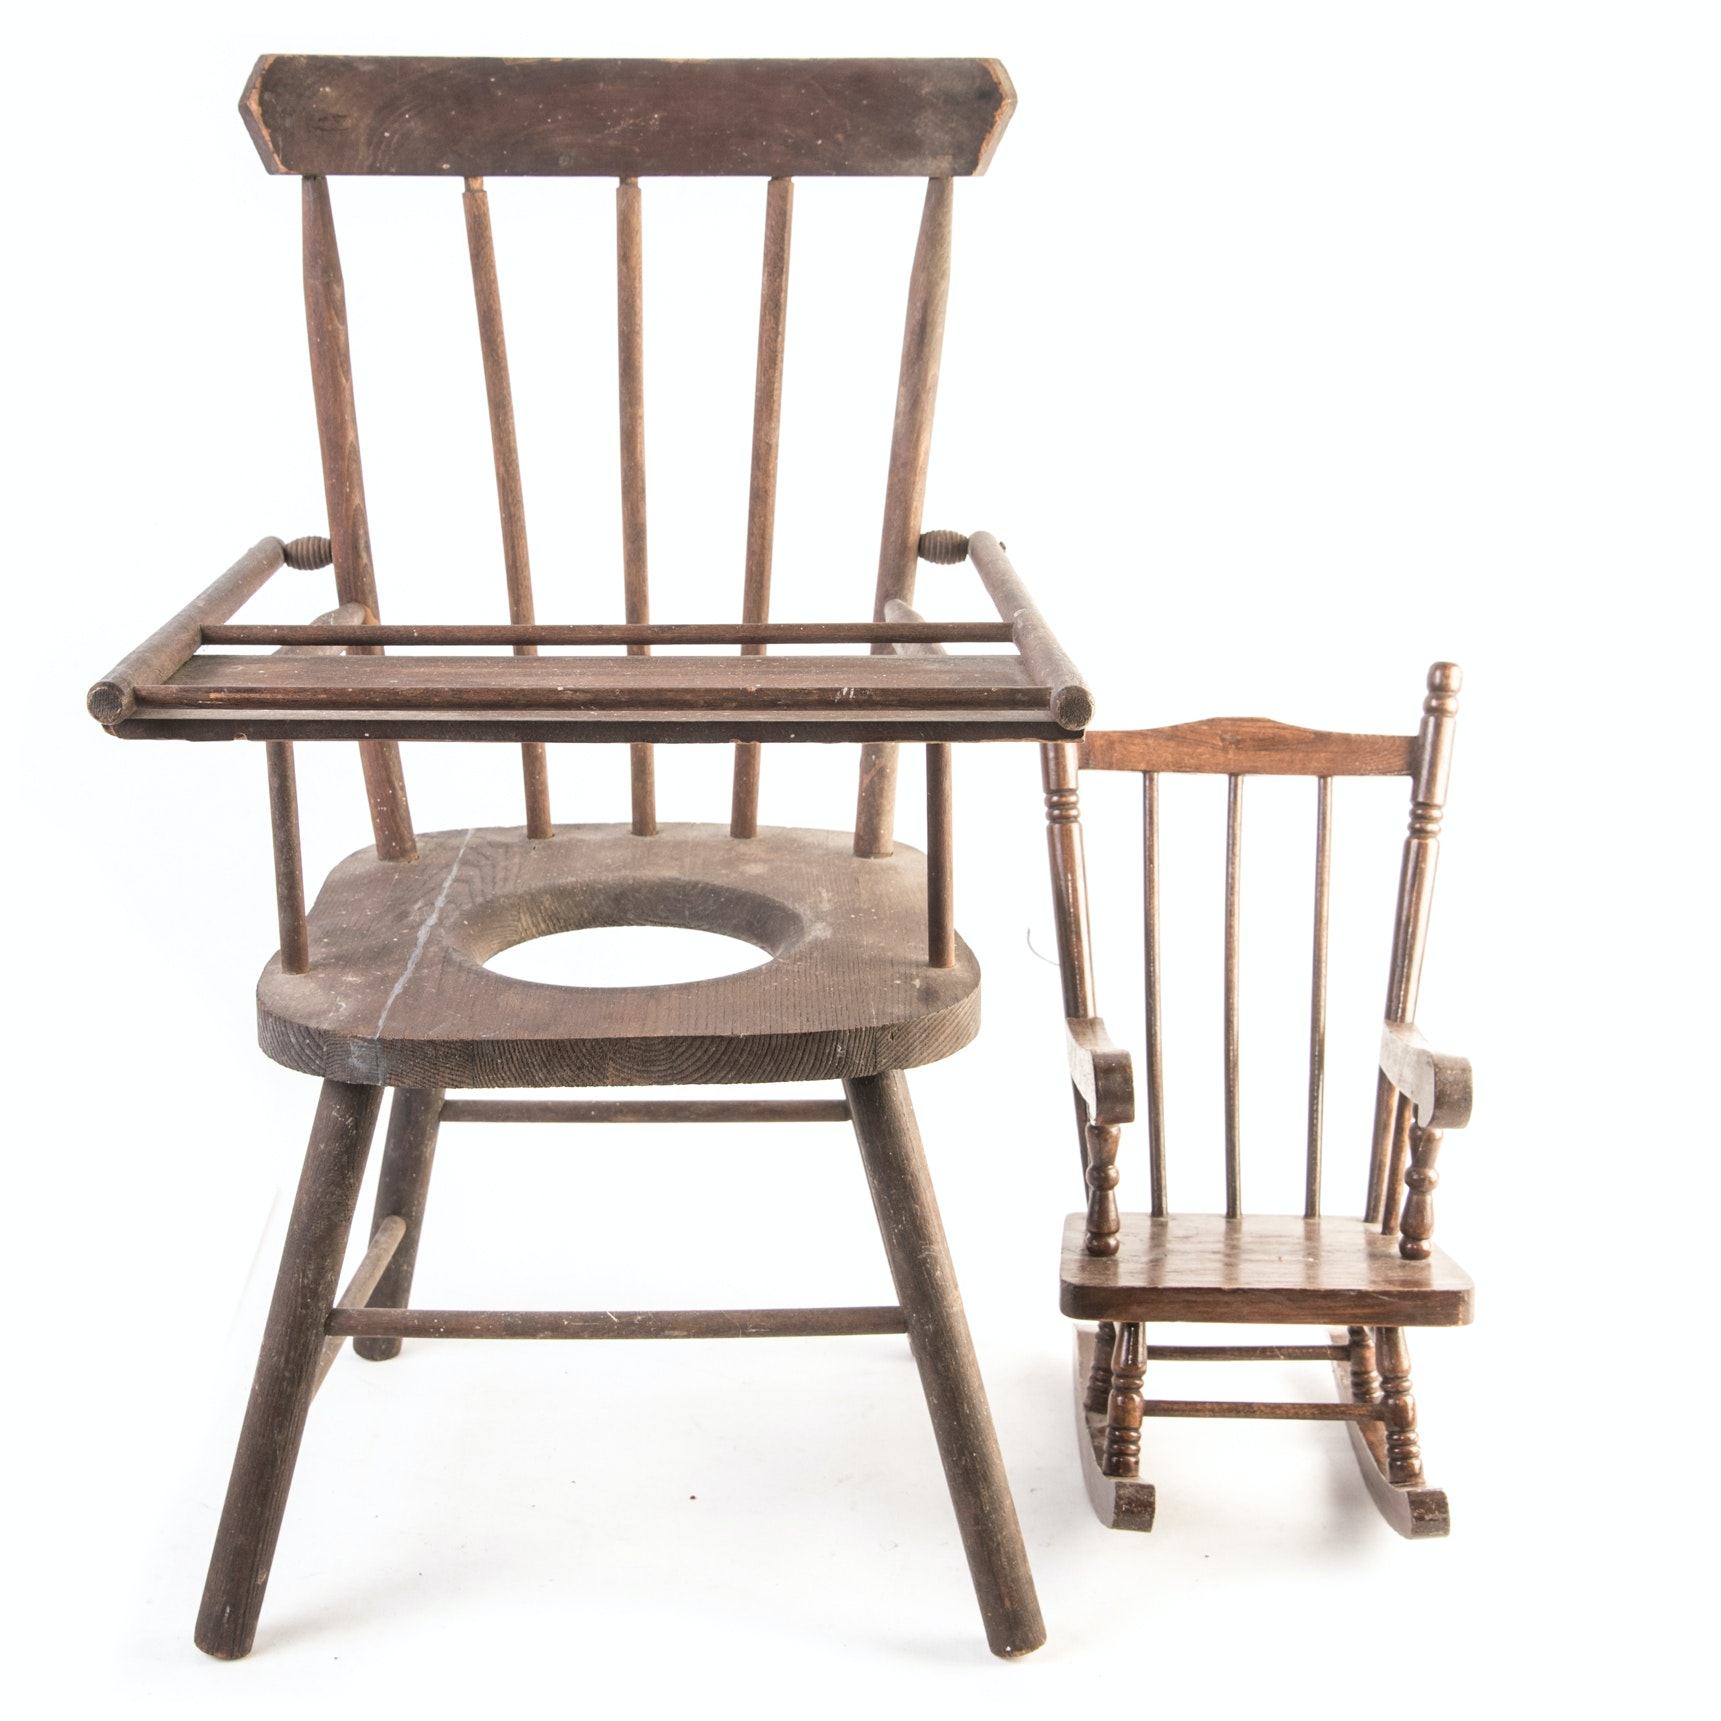 Decorative Vintage Potty Chair and Doll Rocker